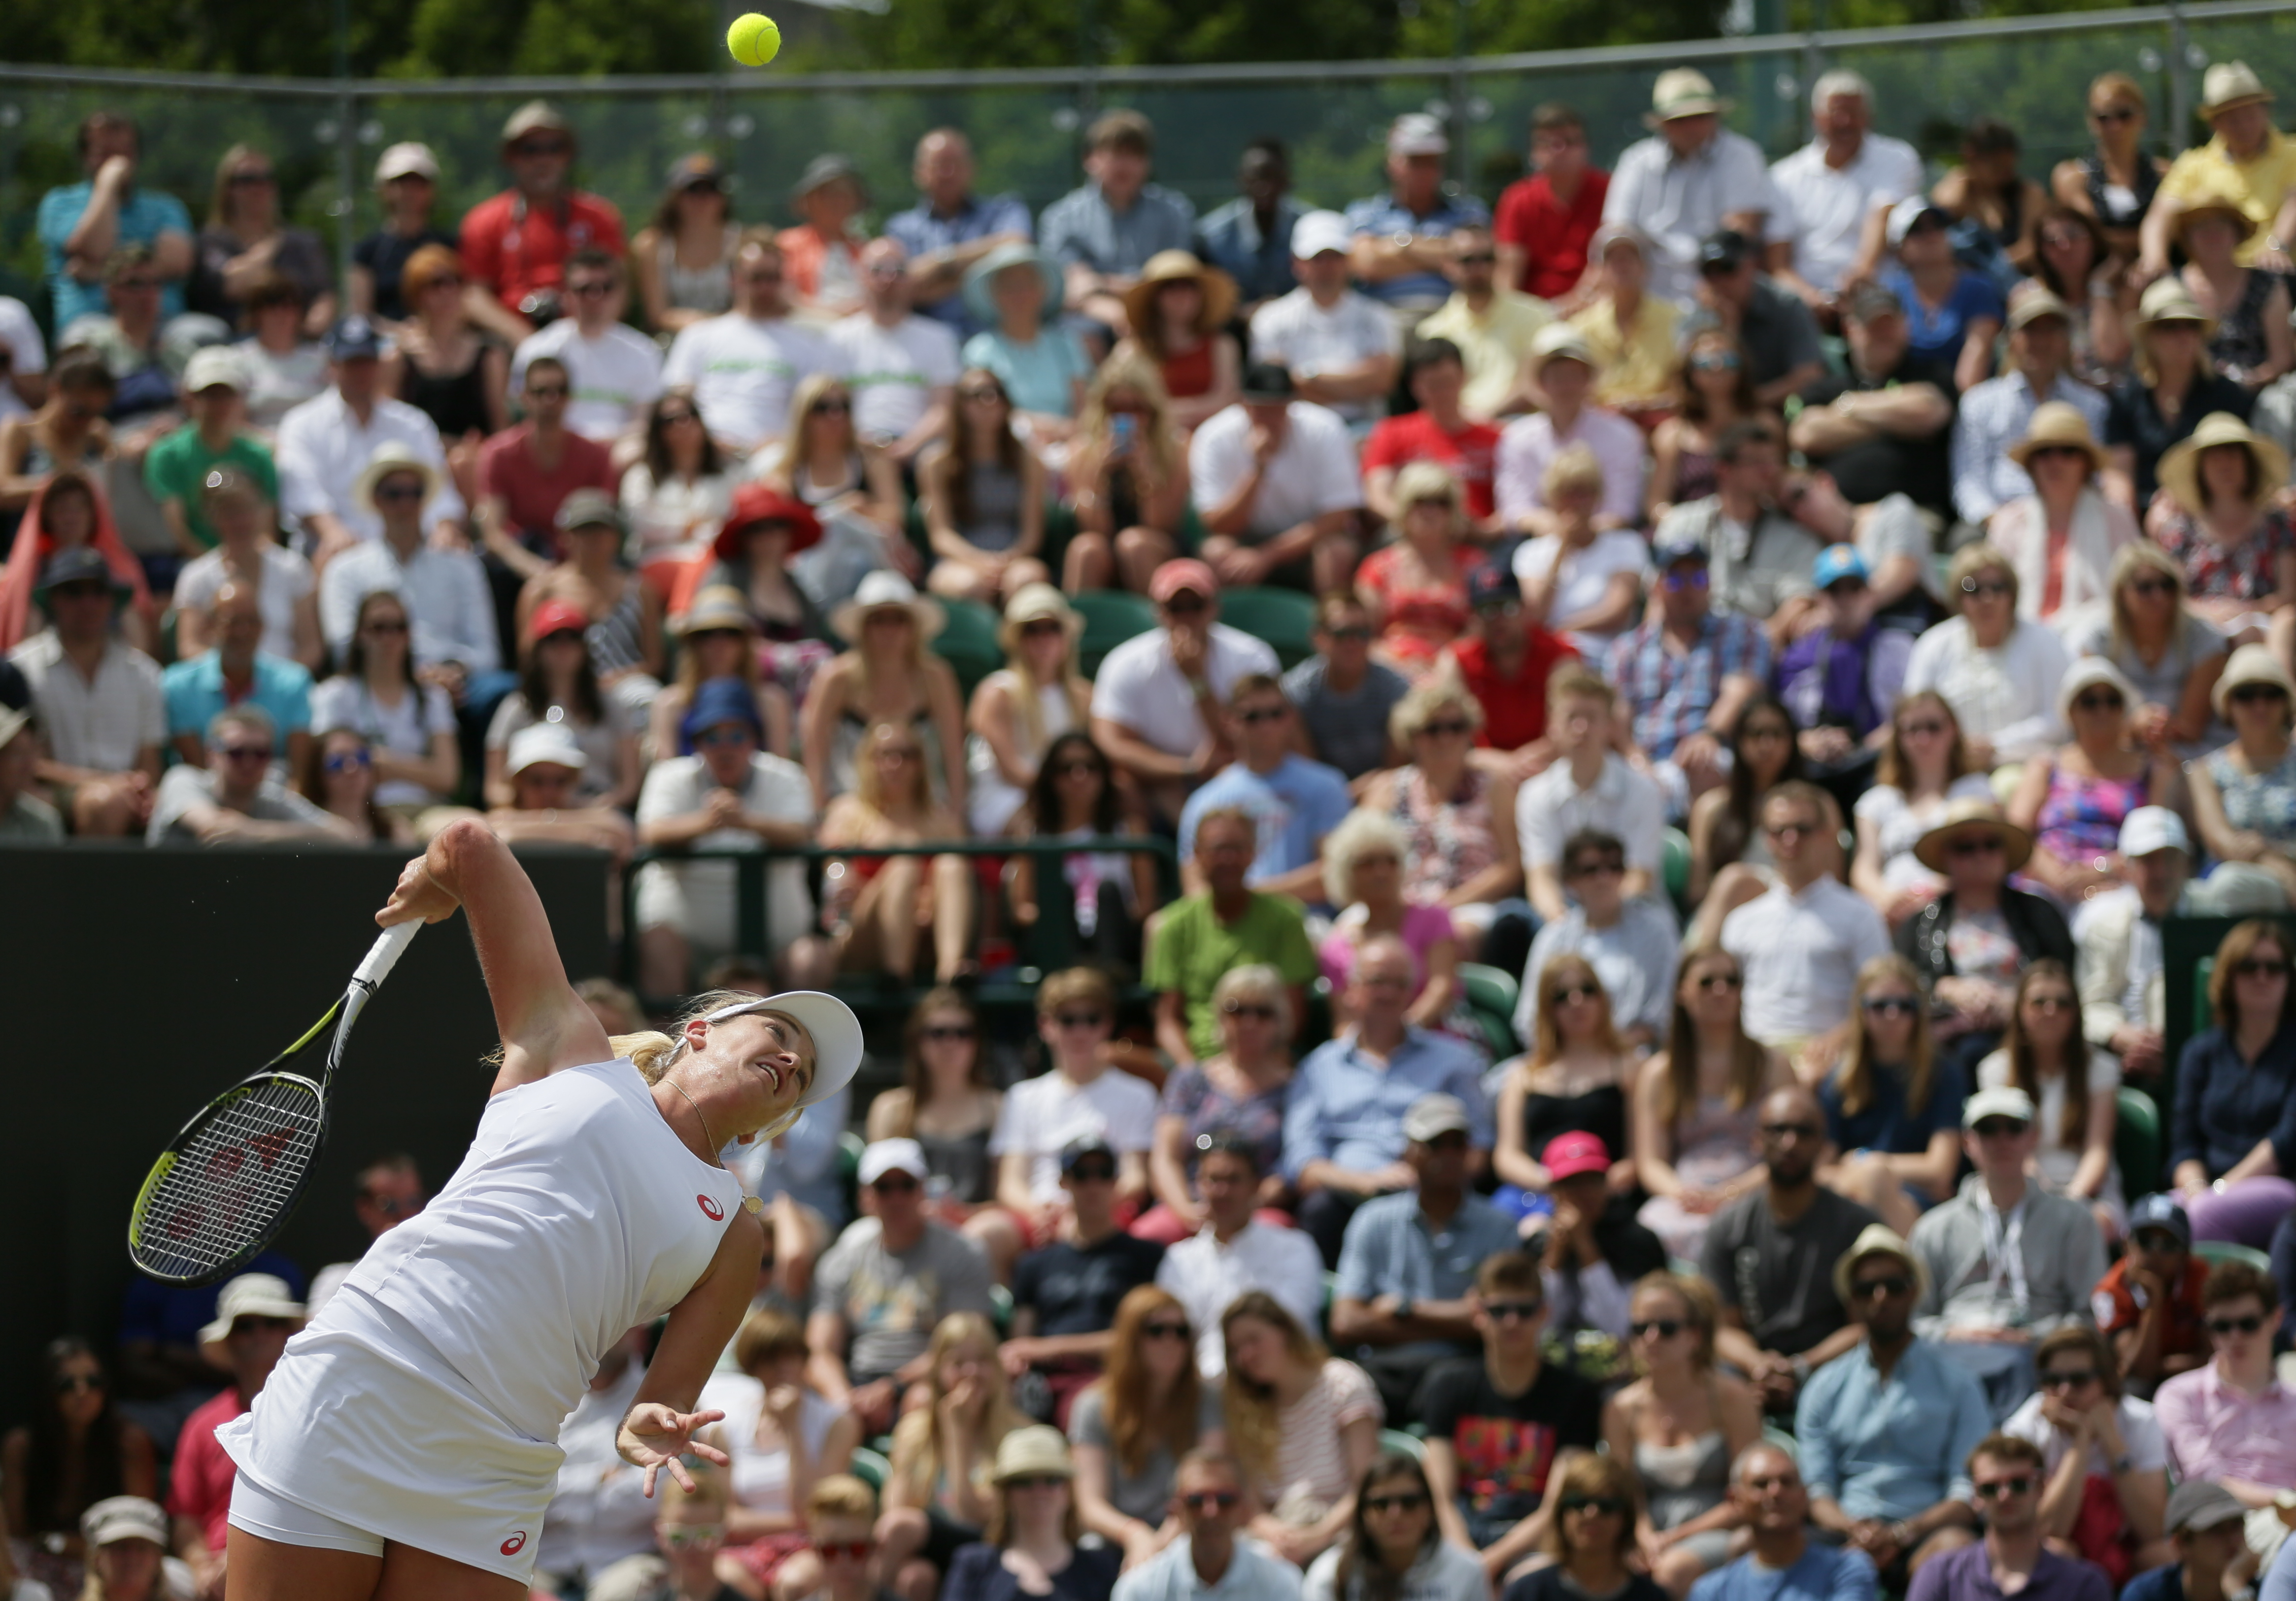 Coco Vandeweghe of the United States serves to Lucie Safarova of the Czech Republic during their singles match at the All England Lawn Tennis Championships in Wimbledon, London, Monday July 6, 2015. (AP Photo/Tim Ireland)